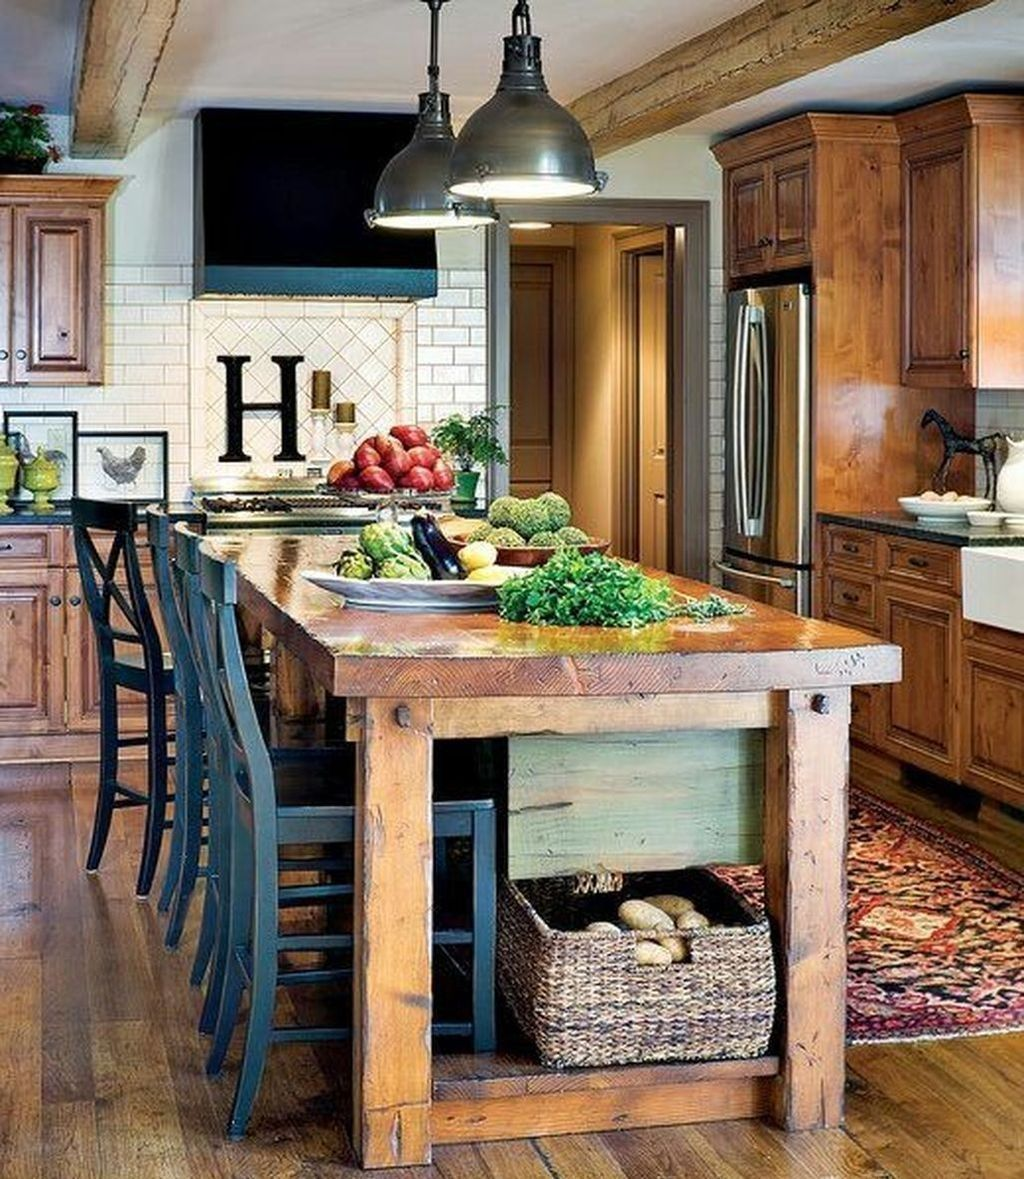 A kitchen island is a useful and multifunctional component